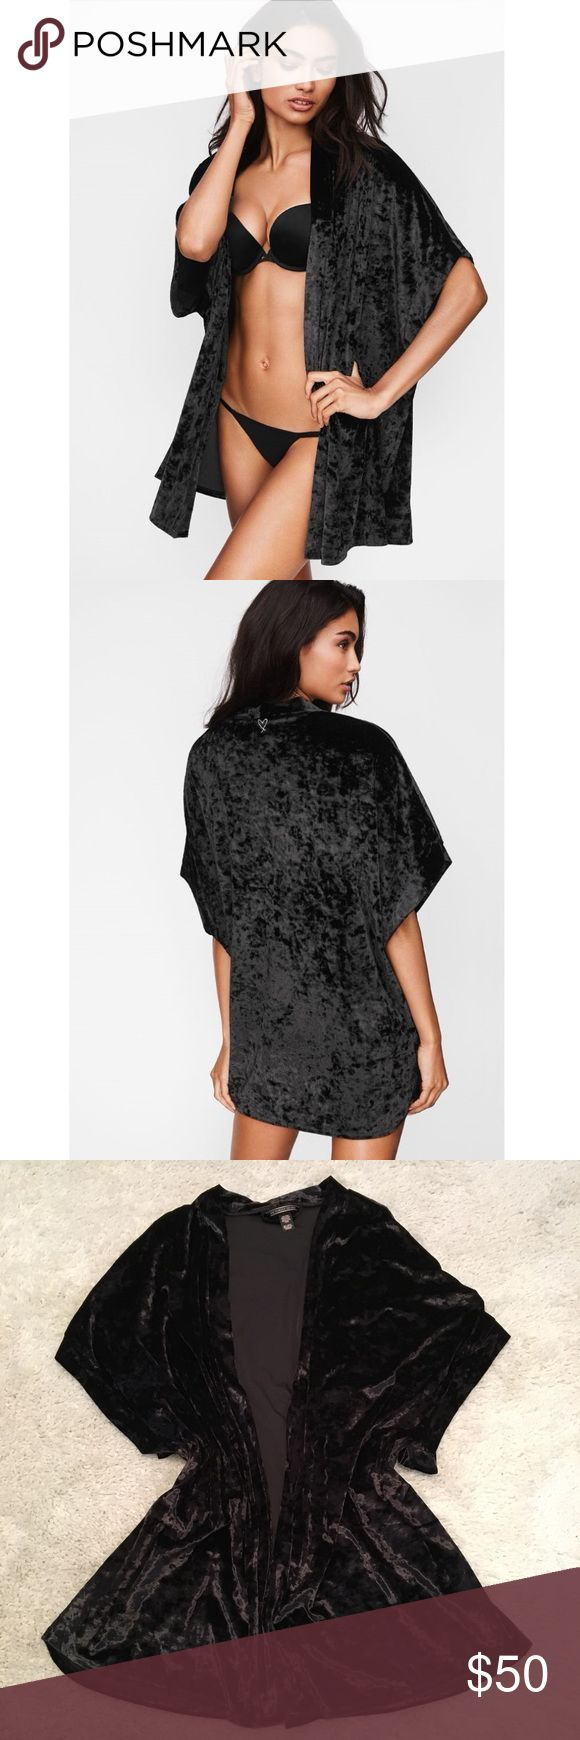 NWOT Victoria's Secret Crushed Velvet Kimono Soft crushed velvet kimono with an iconic embroidered  Angel graphic in black. Color is black. Size M/L. 90% polyester 10% elastane. Comes in original packaging. Can be worn as lounge wear or dressed up for casual wear out and about! Victoria's Secret Intimates & Sleepwear